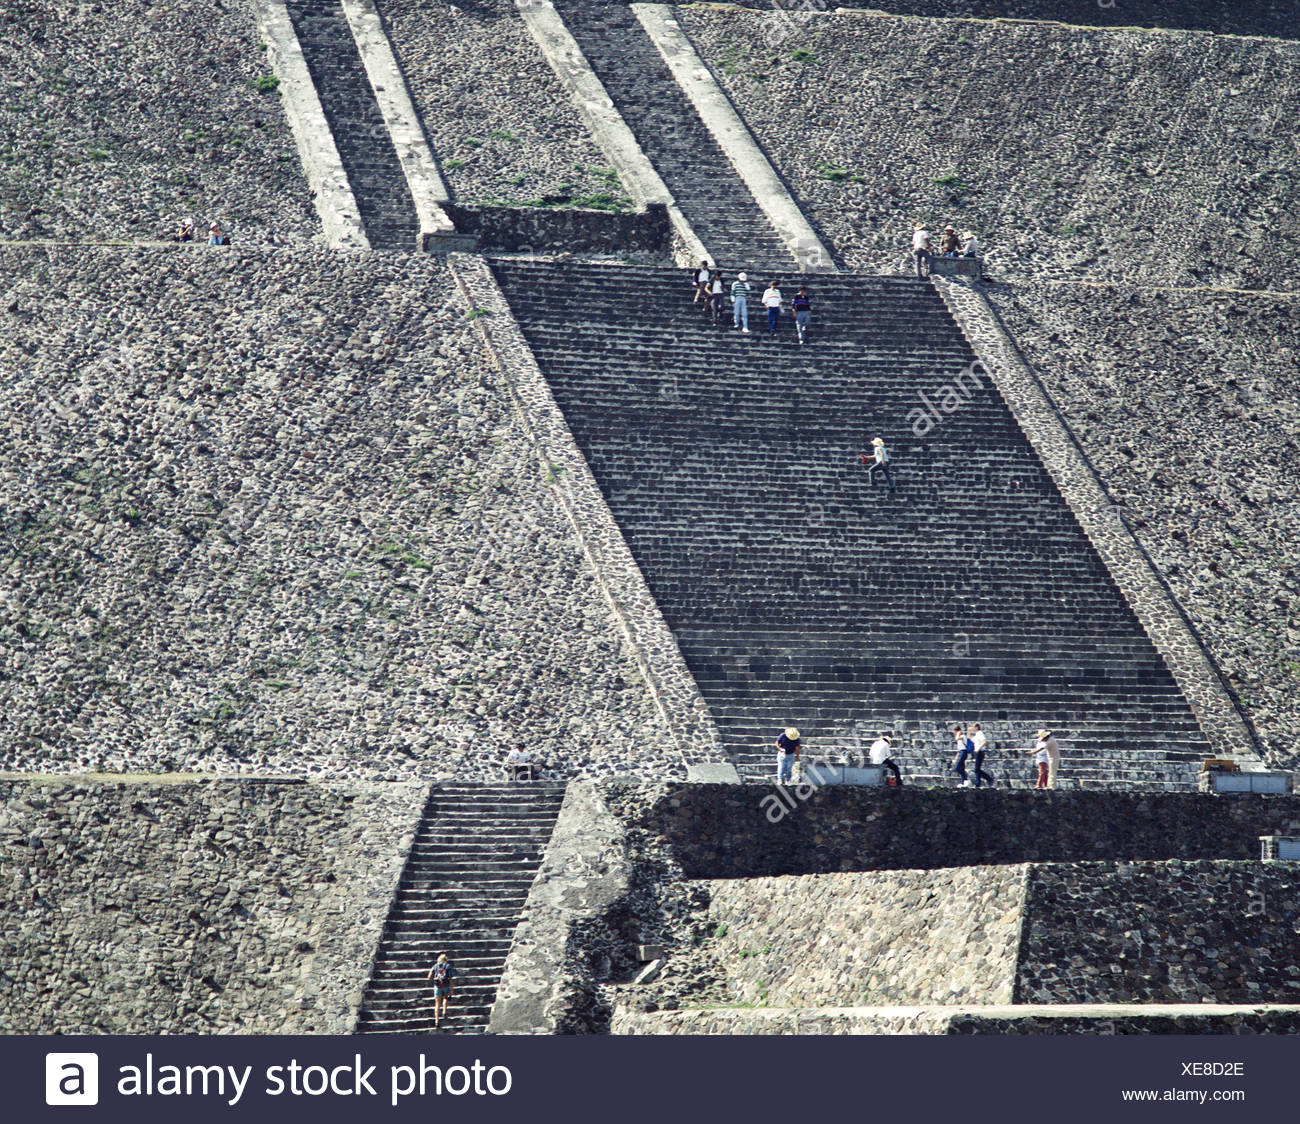 Aztecs ruins culture Mexico Central America Latin America persons suns pyramid Teotihuacan stair - Stock Image